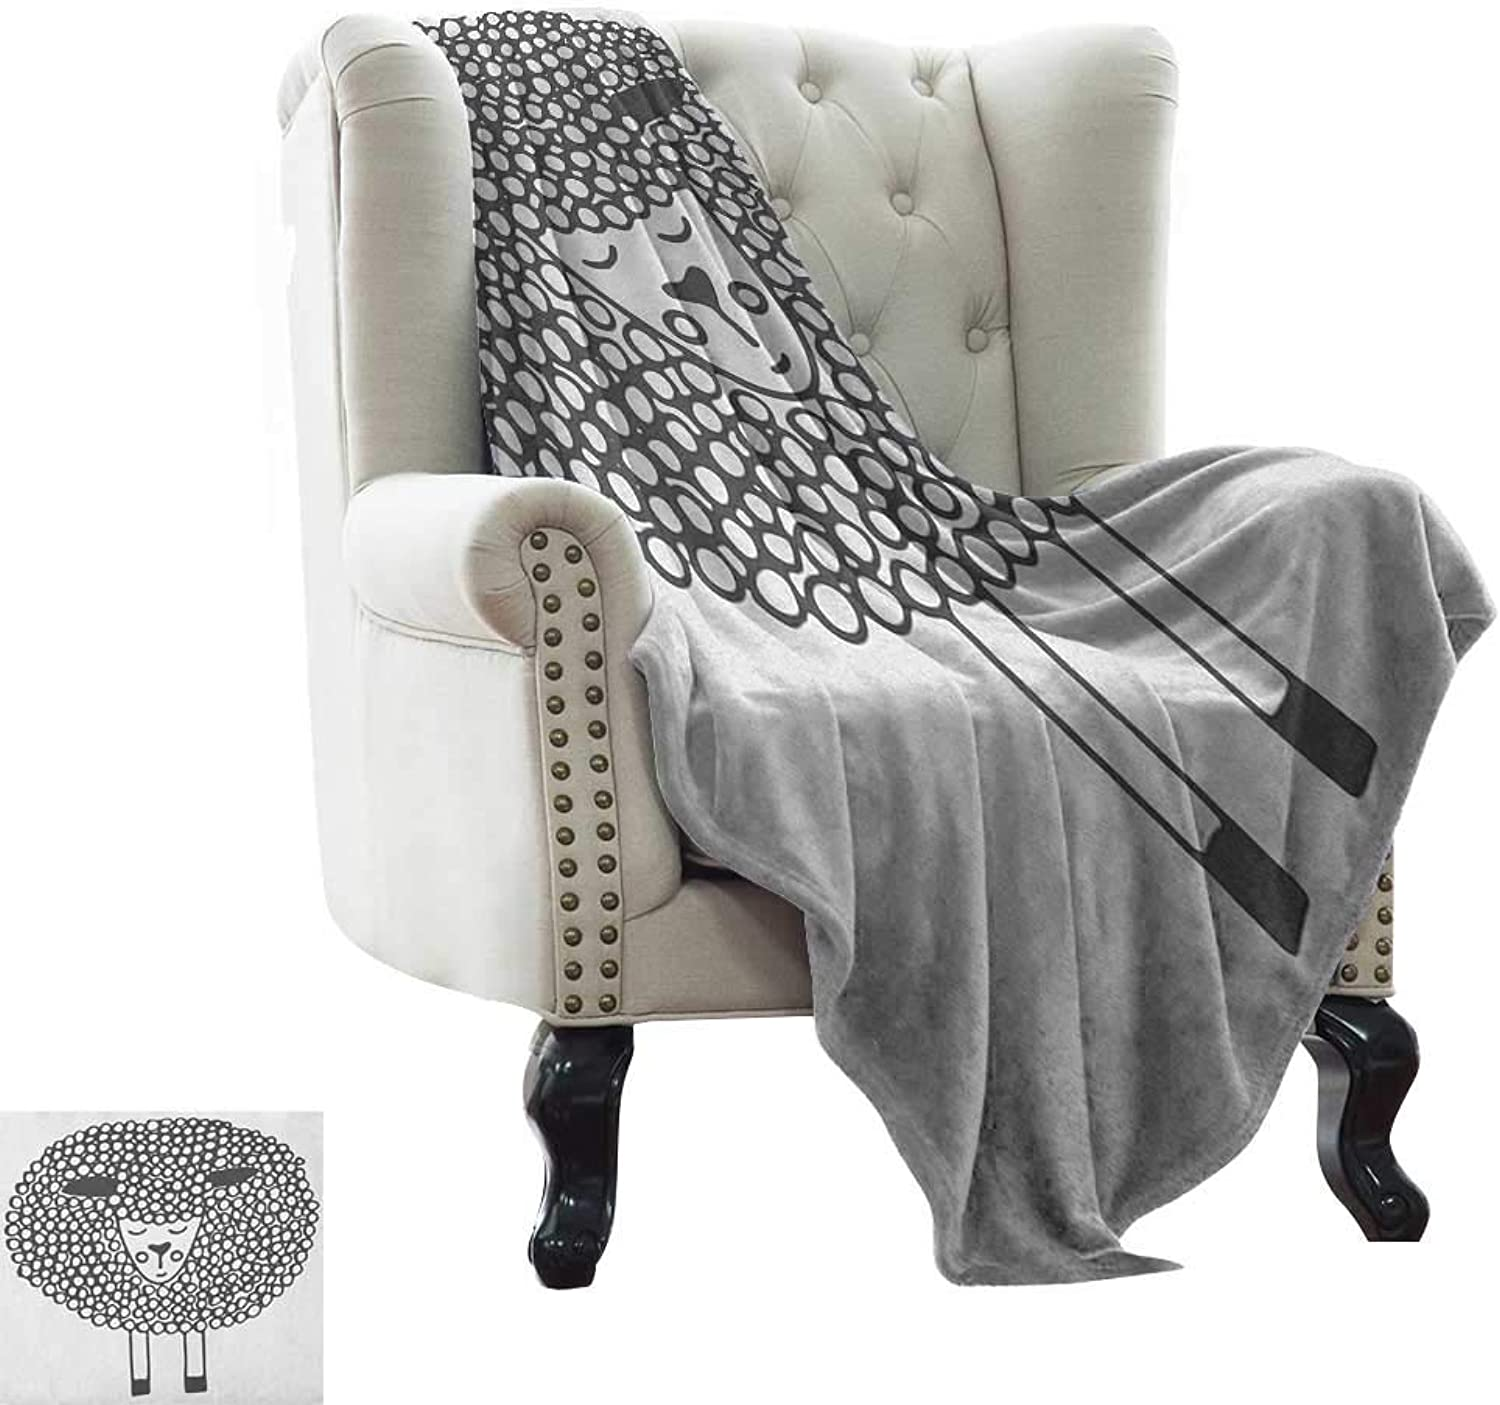 LsWOW Weighted Blanket for Kids Grey and White,Monochrome Sheep with Doodle Design Farm Animal Illustration, Charcoal Grey and White Blanket for Sofa Couch TV Bed All Season 50 x60